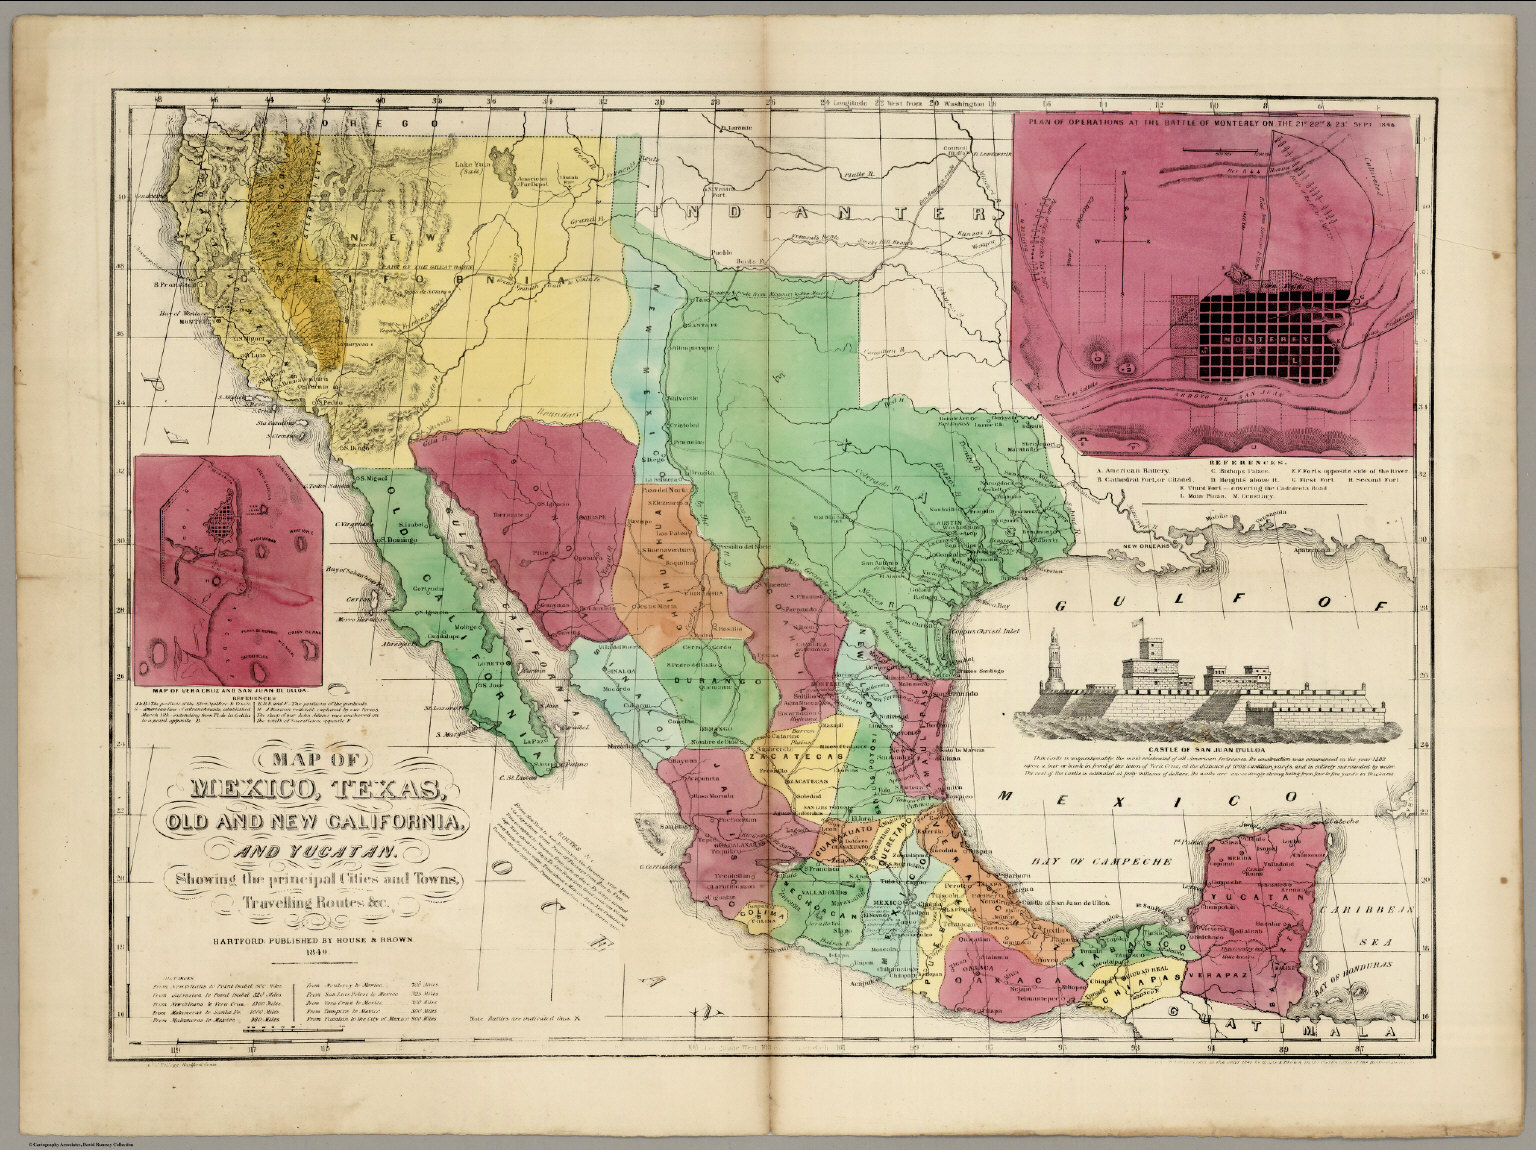 Map Of Mexico Texas Old And New California And Yucatan David